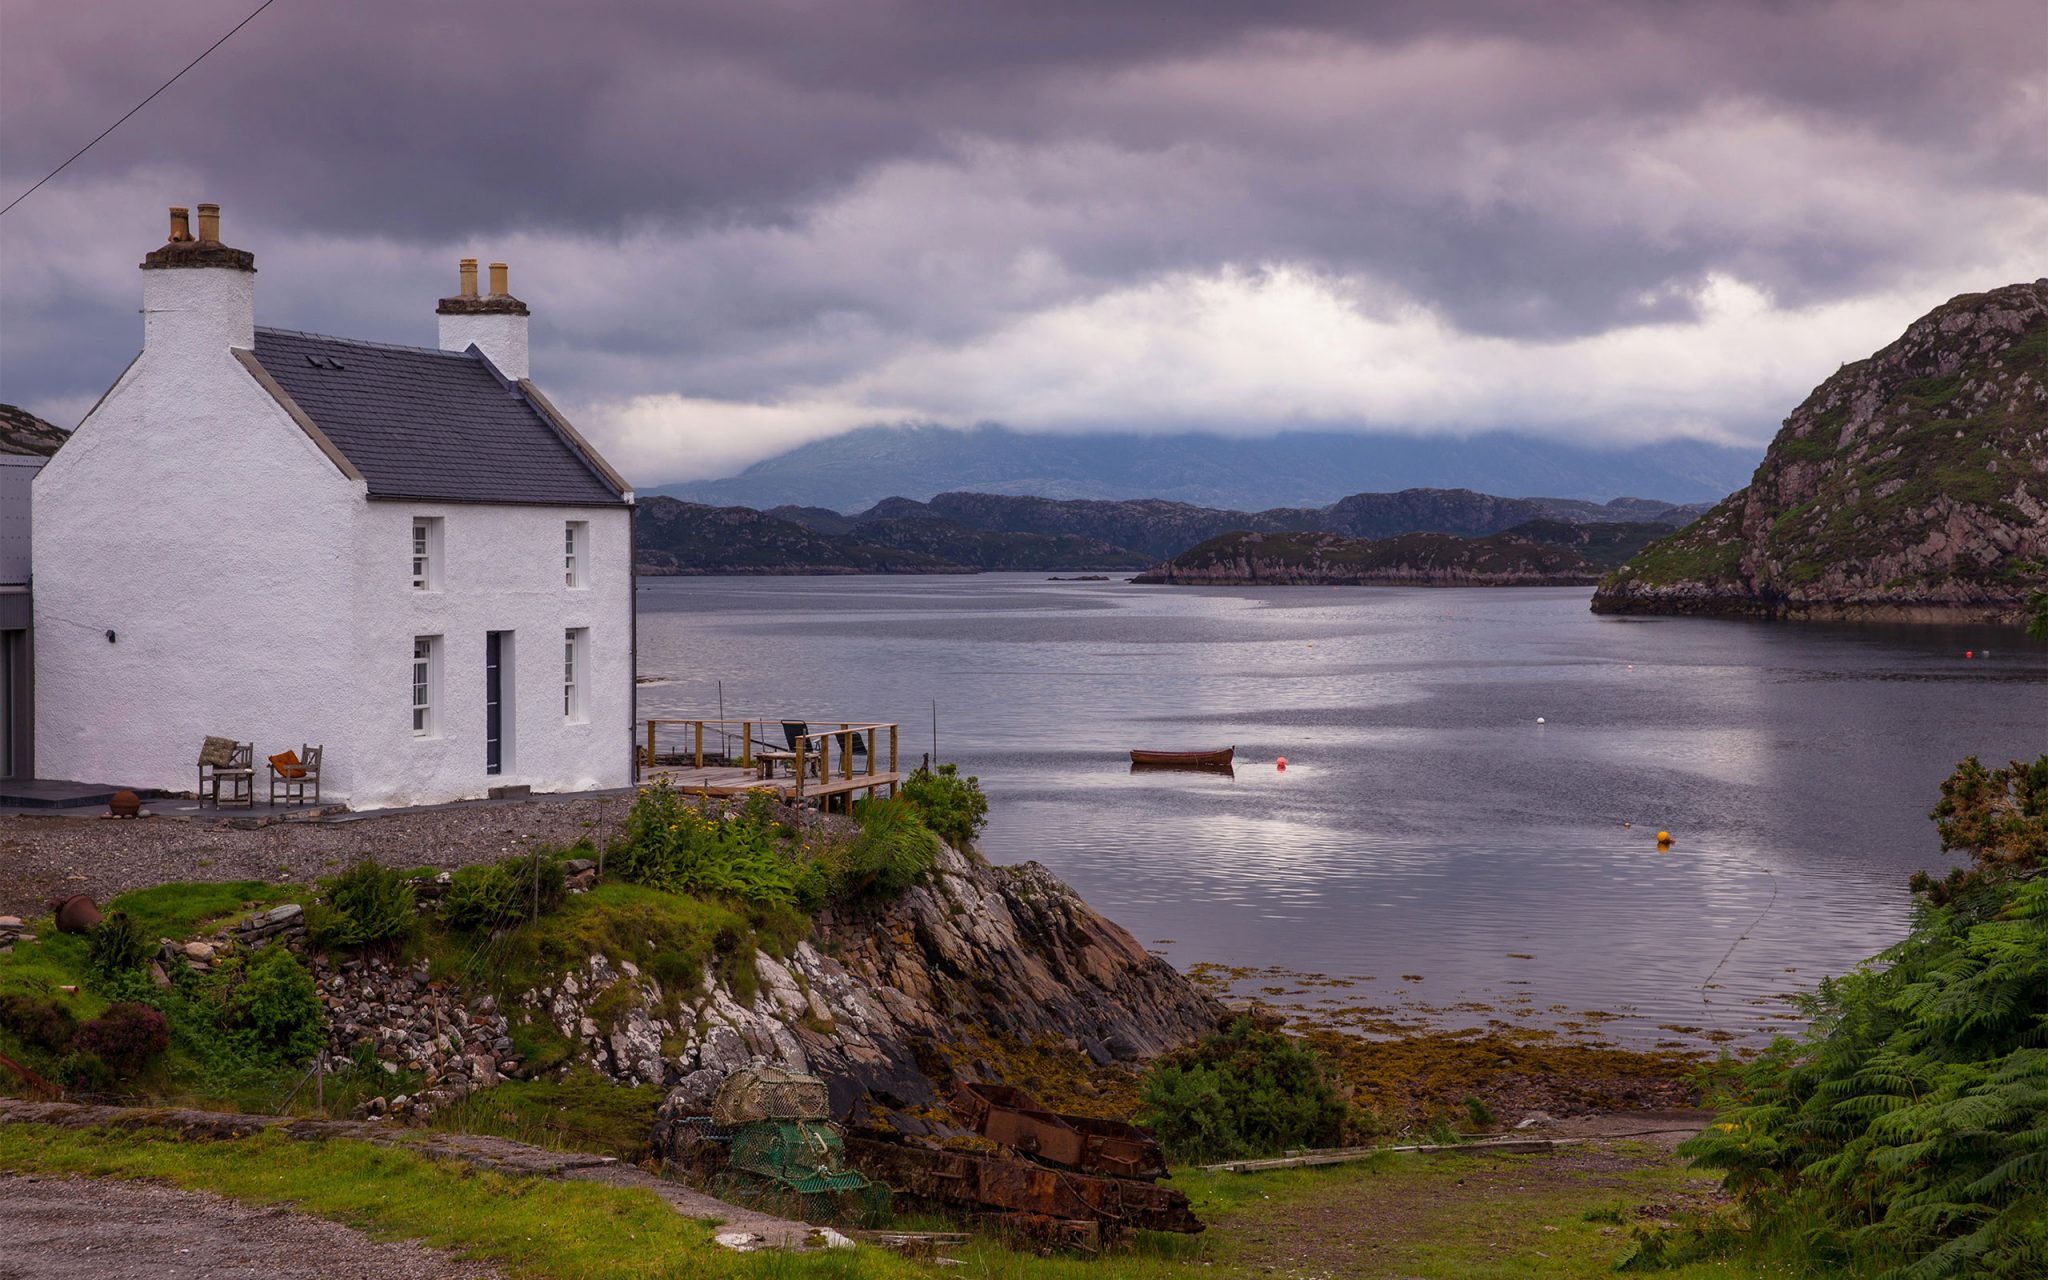 Carey Marks Photography, Documentary Photography, nature, environmental science, Mountains, Landscape, Highlands, Scottish Highlands, Lairg, Sutherland, Vista, Panorama, Landscape photography, Fangamore, Scourie.